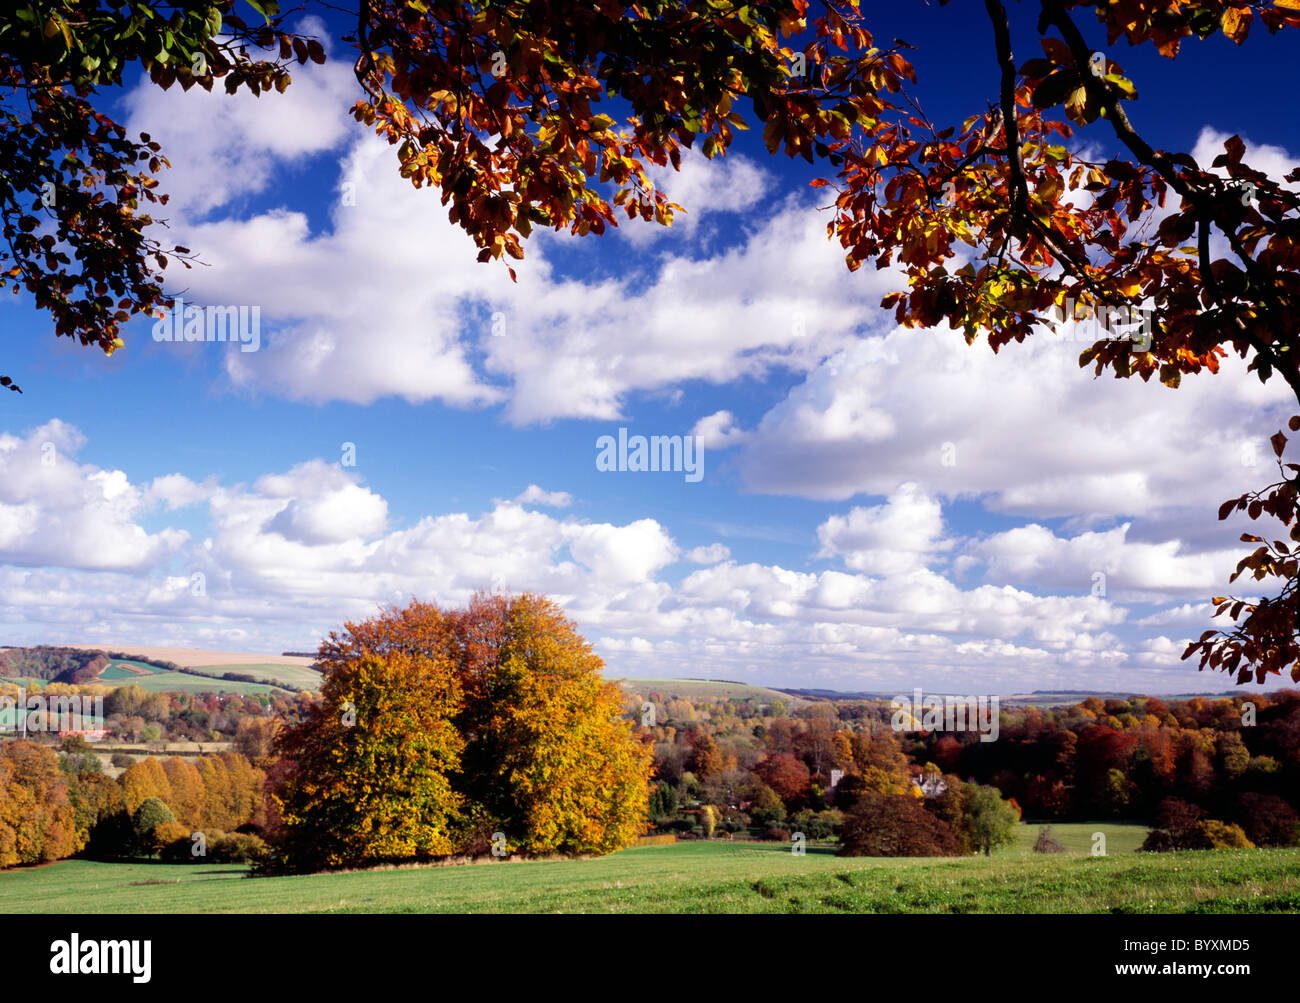 Beech trees at Boyton in the Wylye Valley, Wiltshire, England. Stock Photo